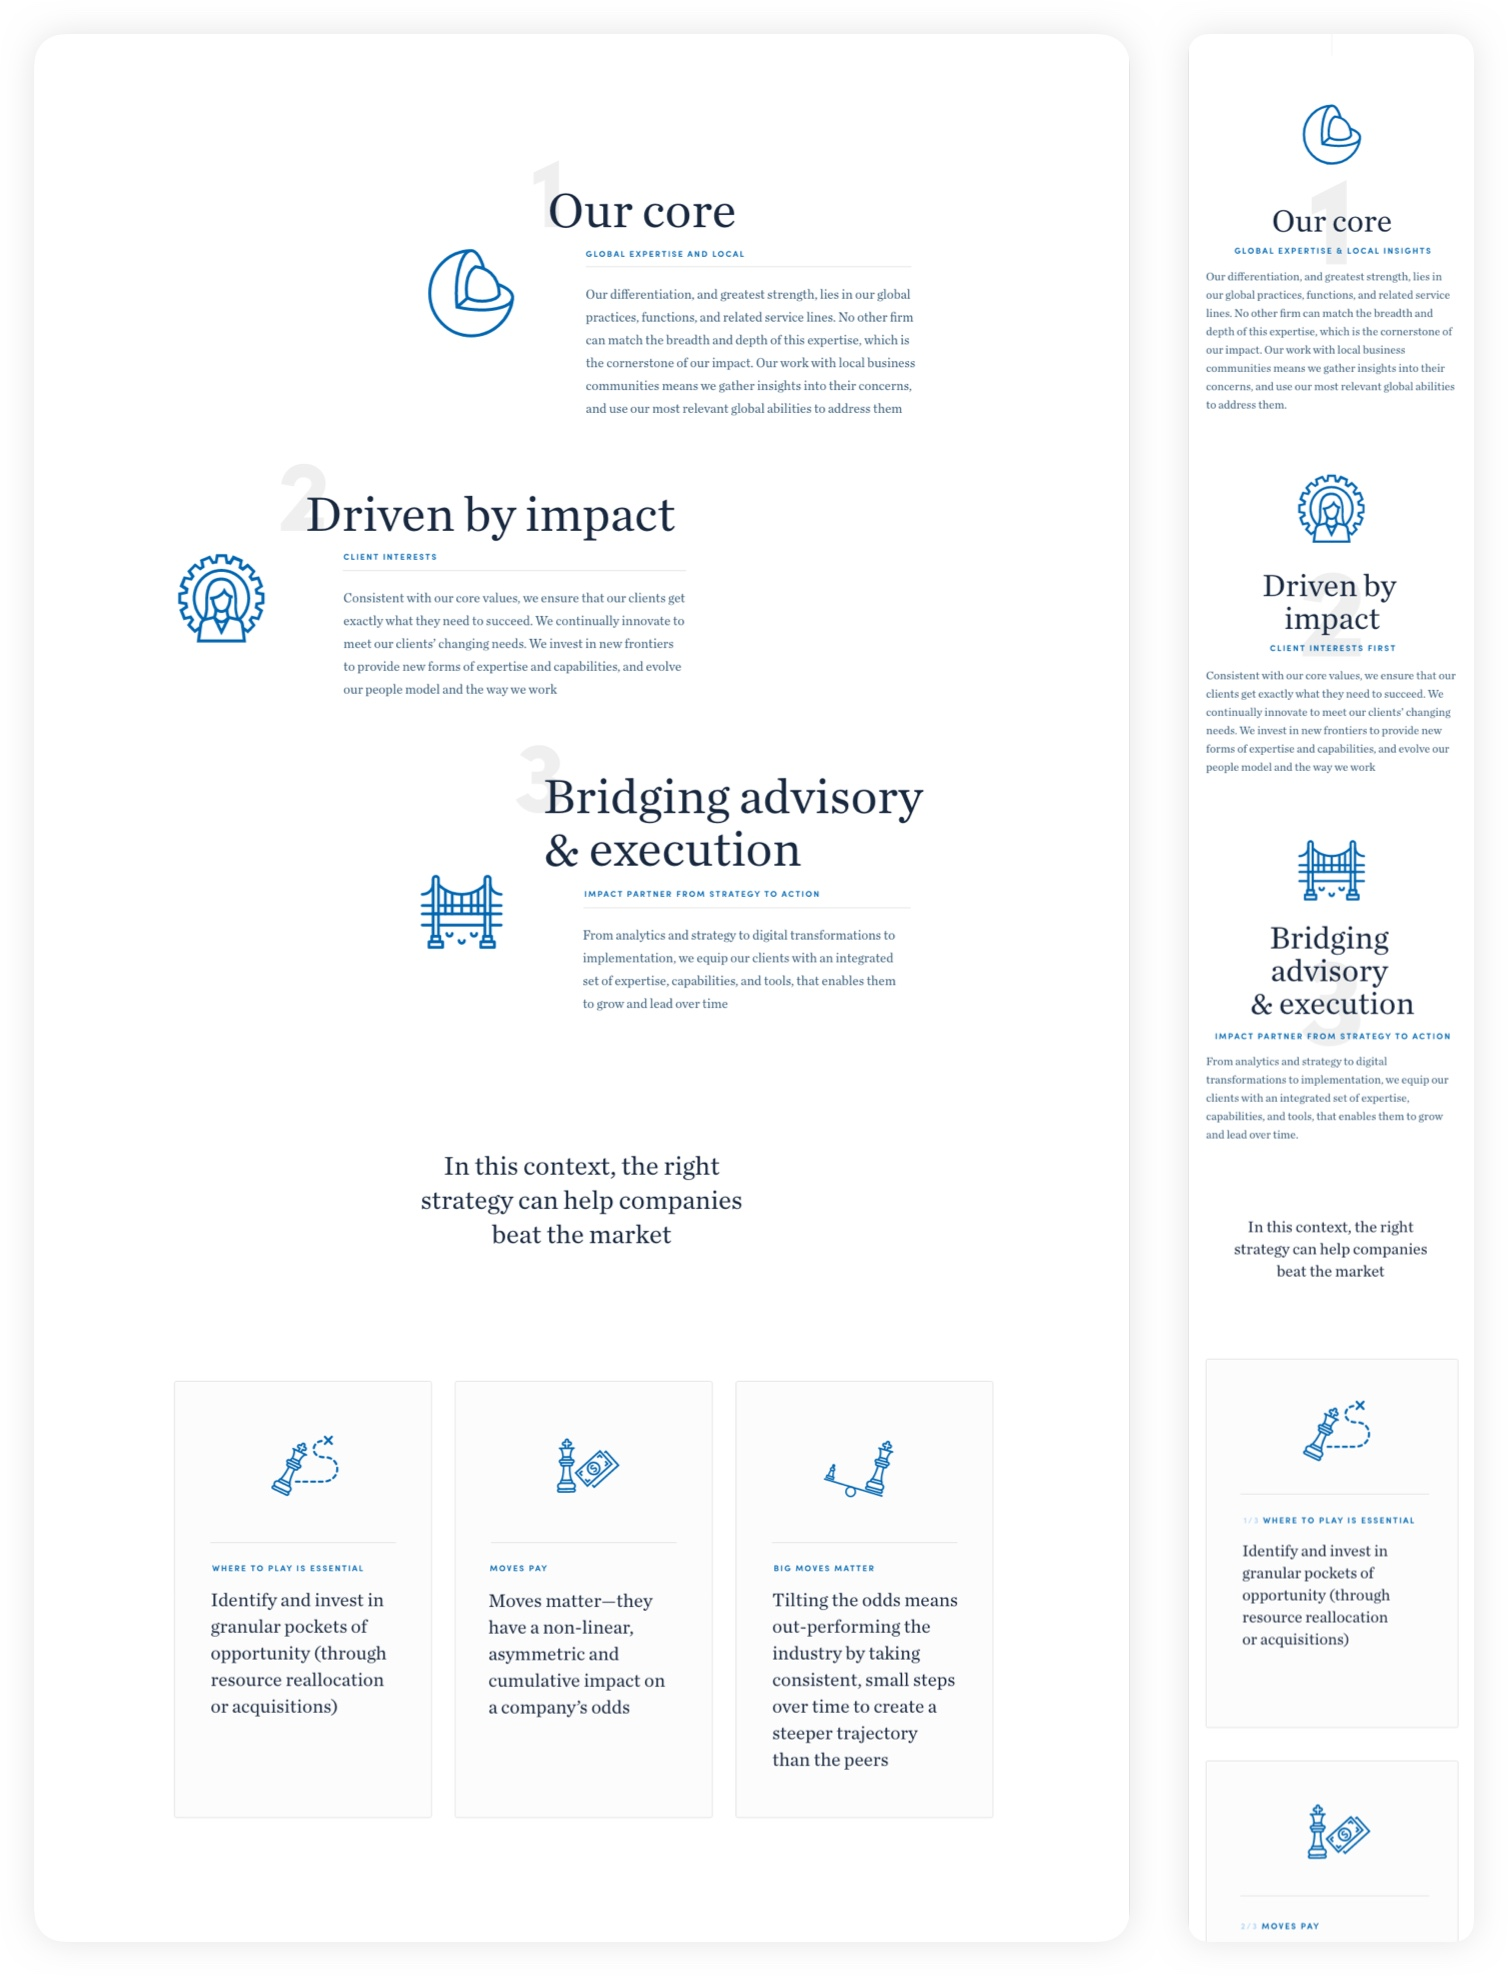 Design for Our core section – McKinsey C&E experience website: Navigating complexity